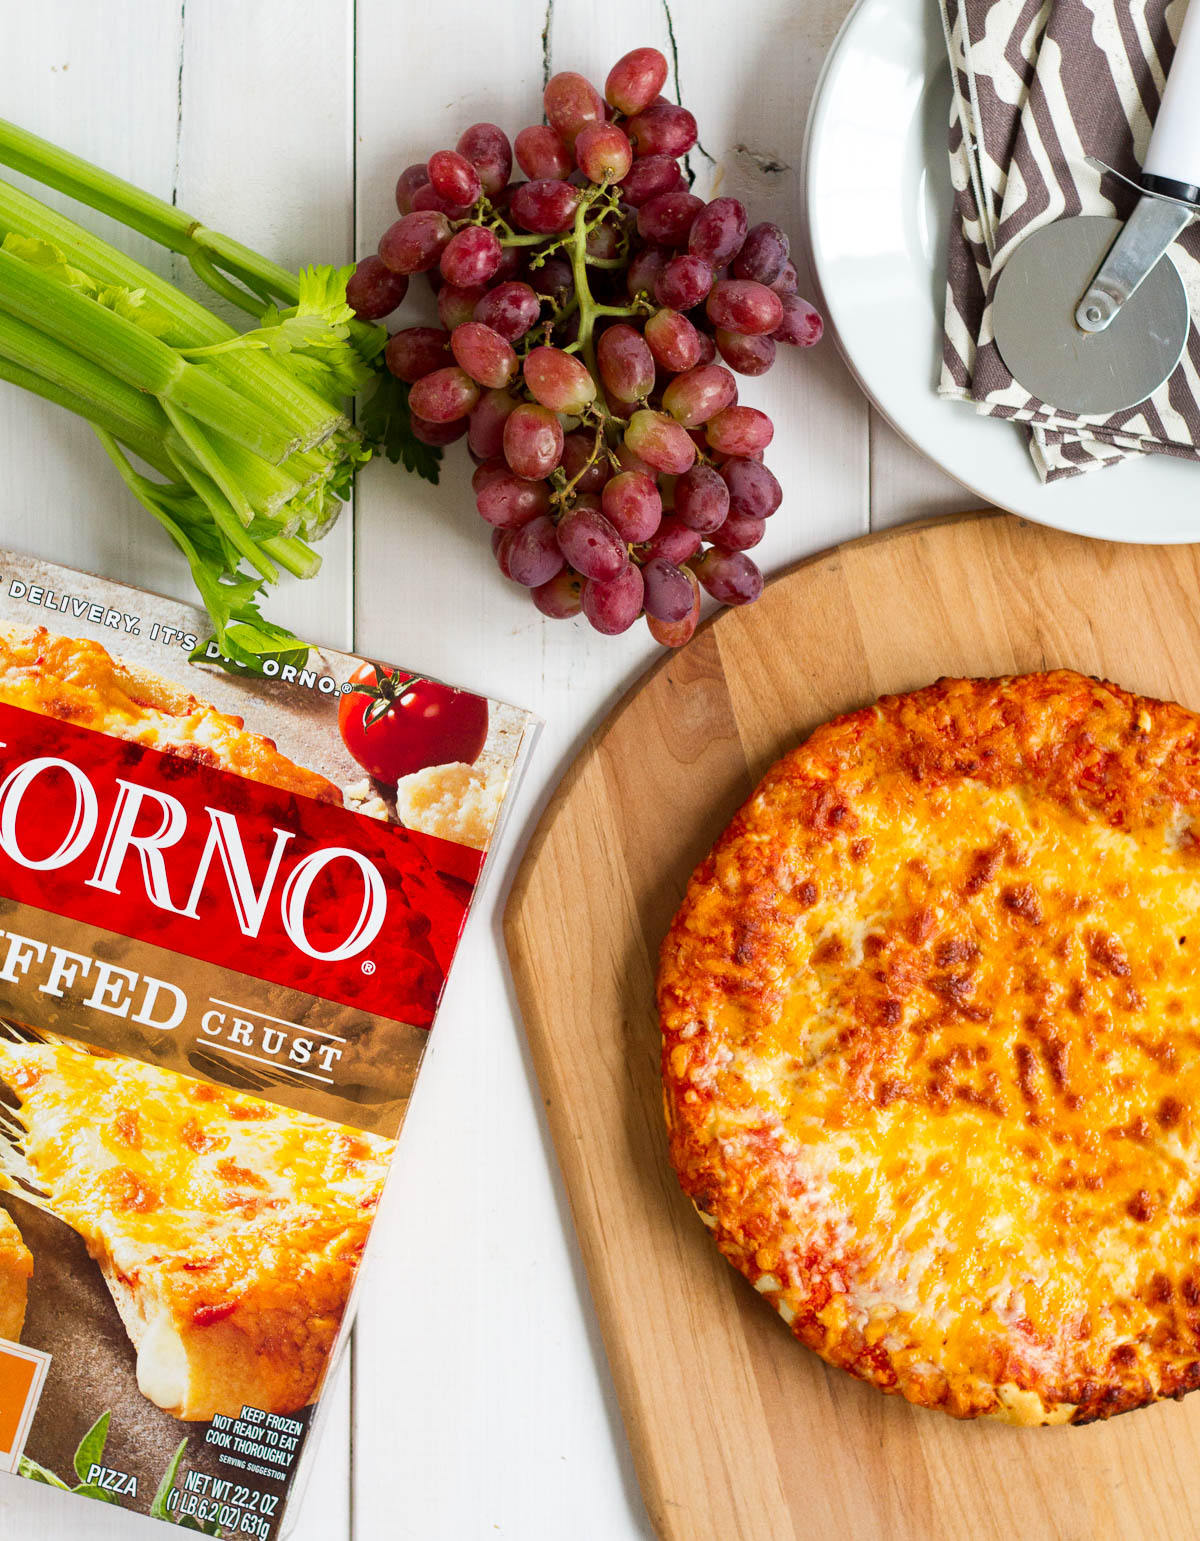 When we have a really busy weeknight come up, or we need a quick and easy dinner that the babysitter can fix for the kids, DiGiorno Cheese Stuffed Crust Five Cheese Pizza is our go-to! Everyone loves it, and the crust is preservative free. Paired with a side salad or cut up fruits and veggies, it makes a wholesome and deliciously easy dinner.